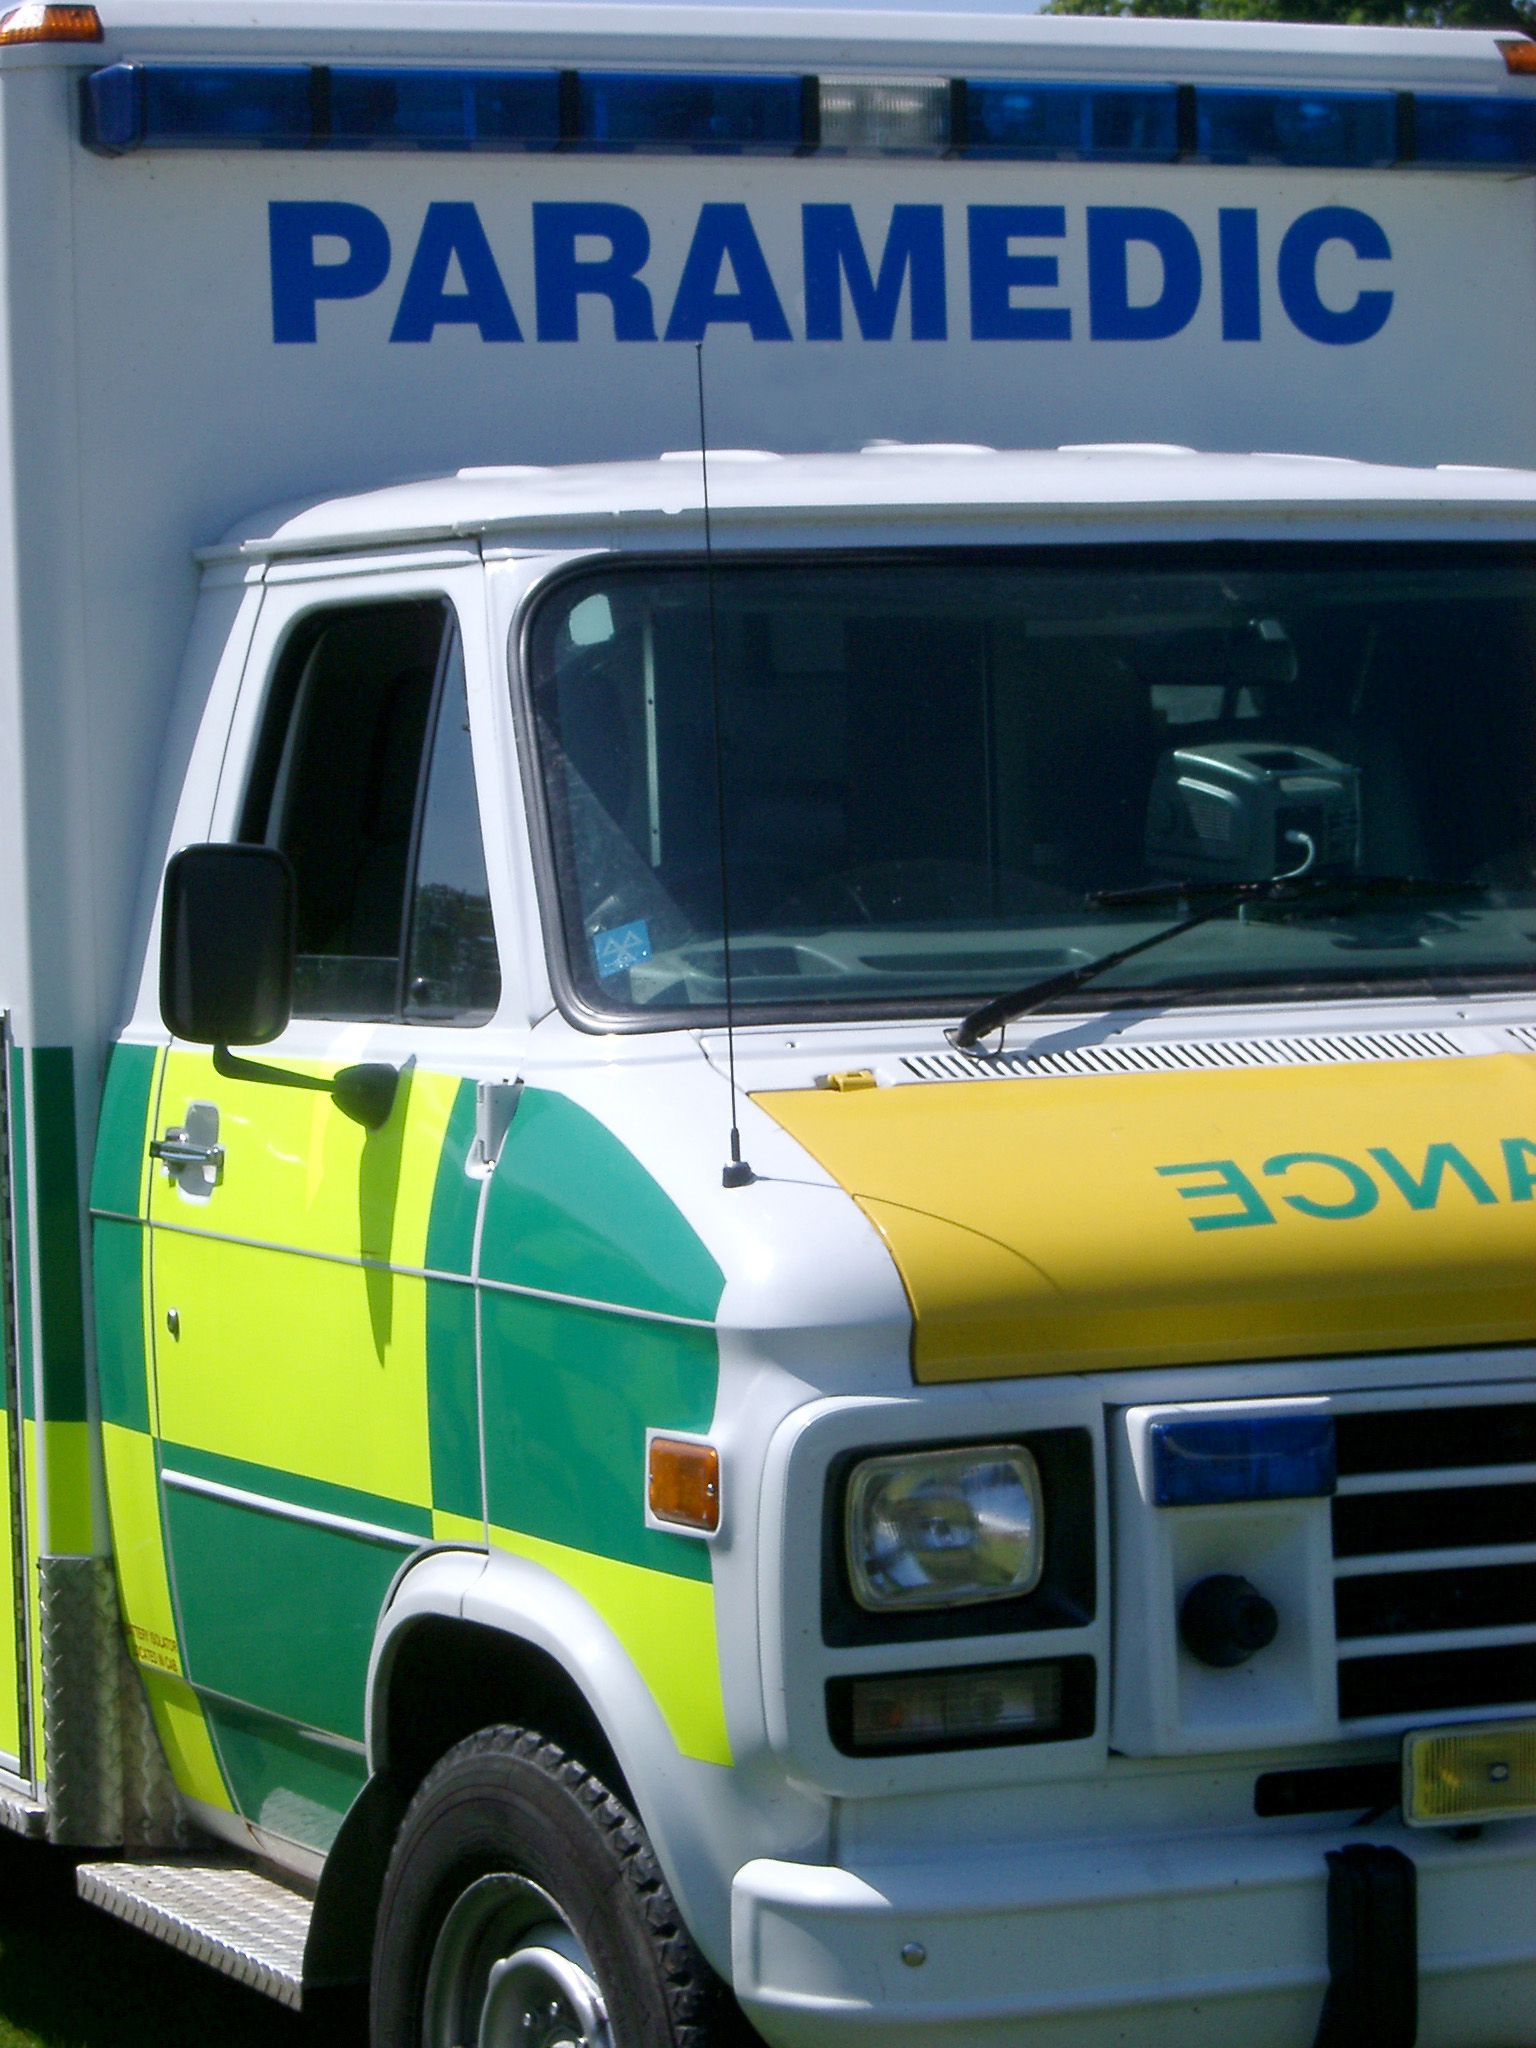 Close up detail of an ambulance showing the brightly colored signage on the door and large sign above the cab roof saying - Paramedic